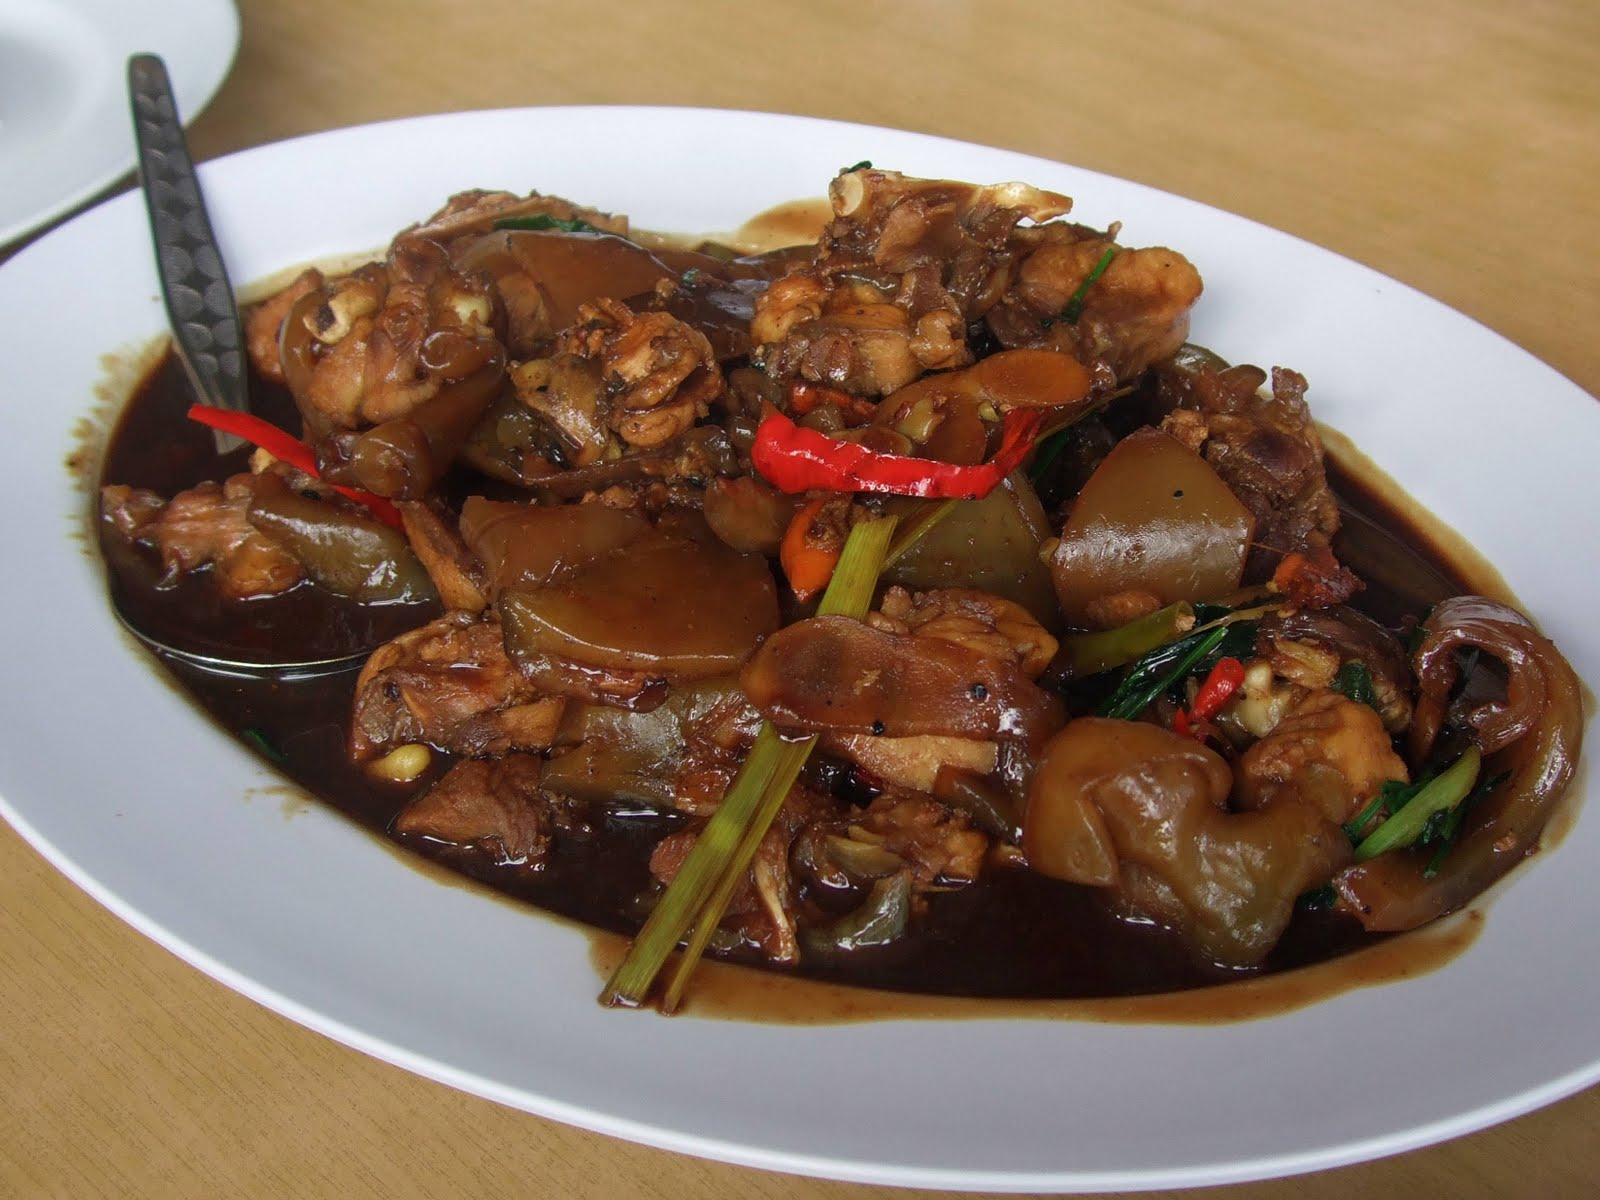 Next came the ubiquitous midin. This was stir-fried with garlic and ...